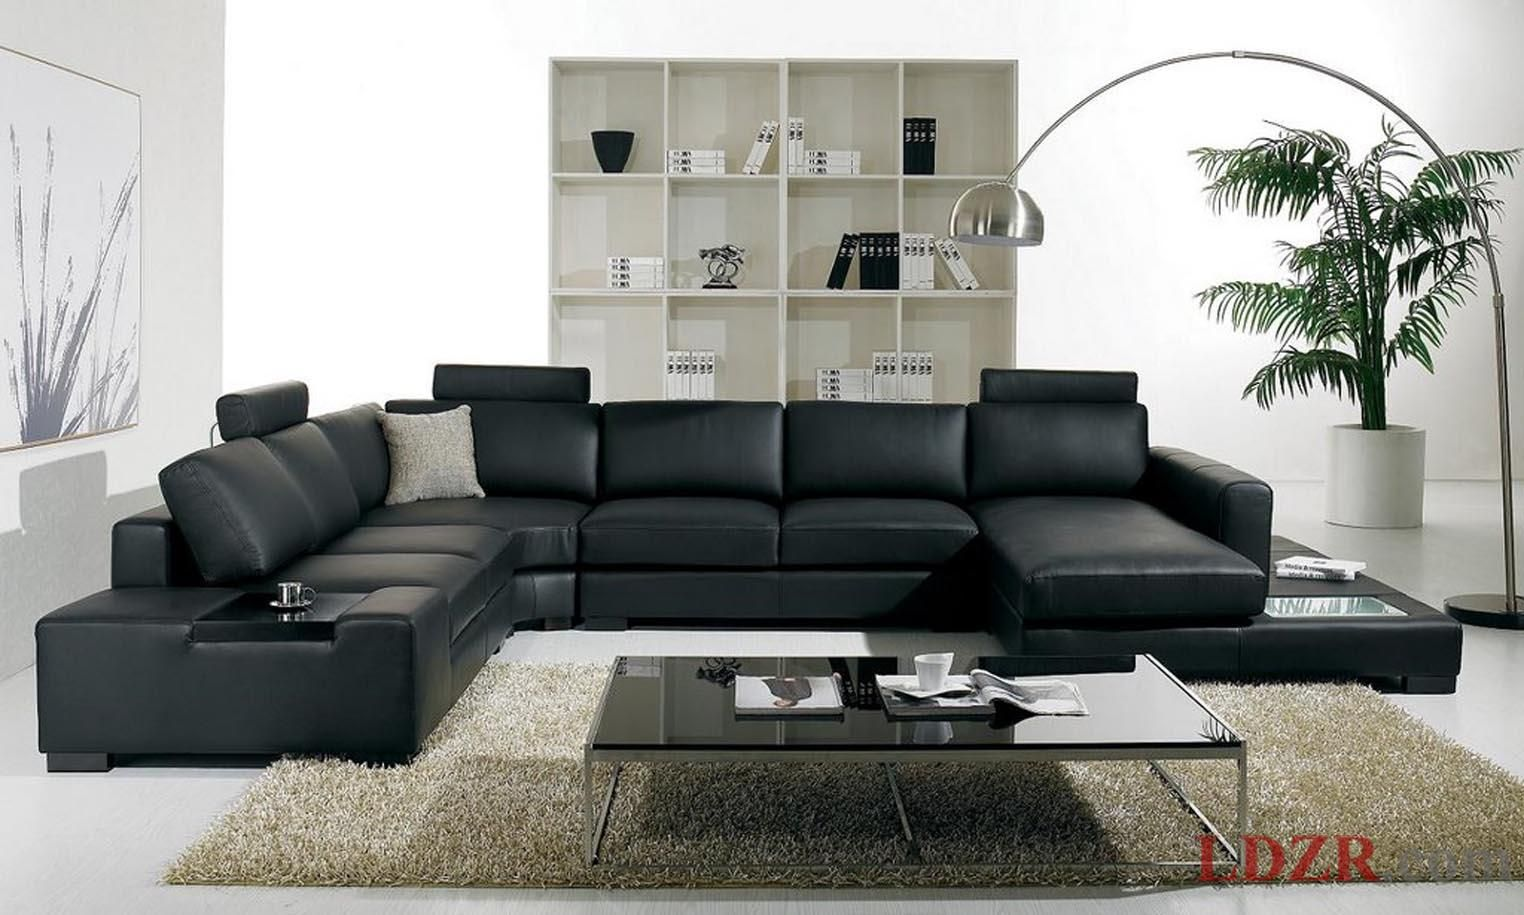 Home And Living | Lovely Living Room With Black Leather Sofa | Home Design  And Ideas